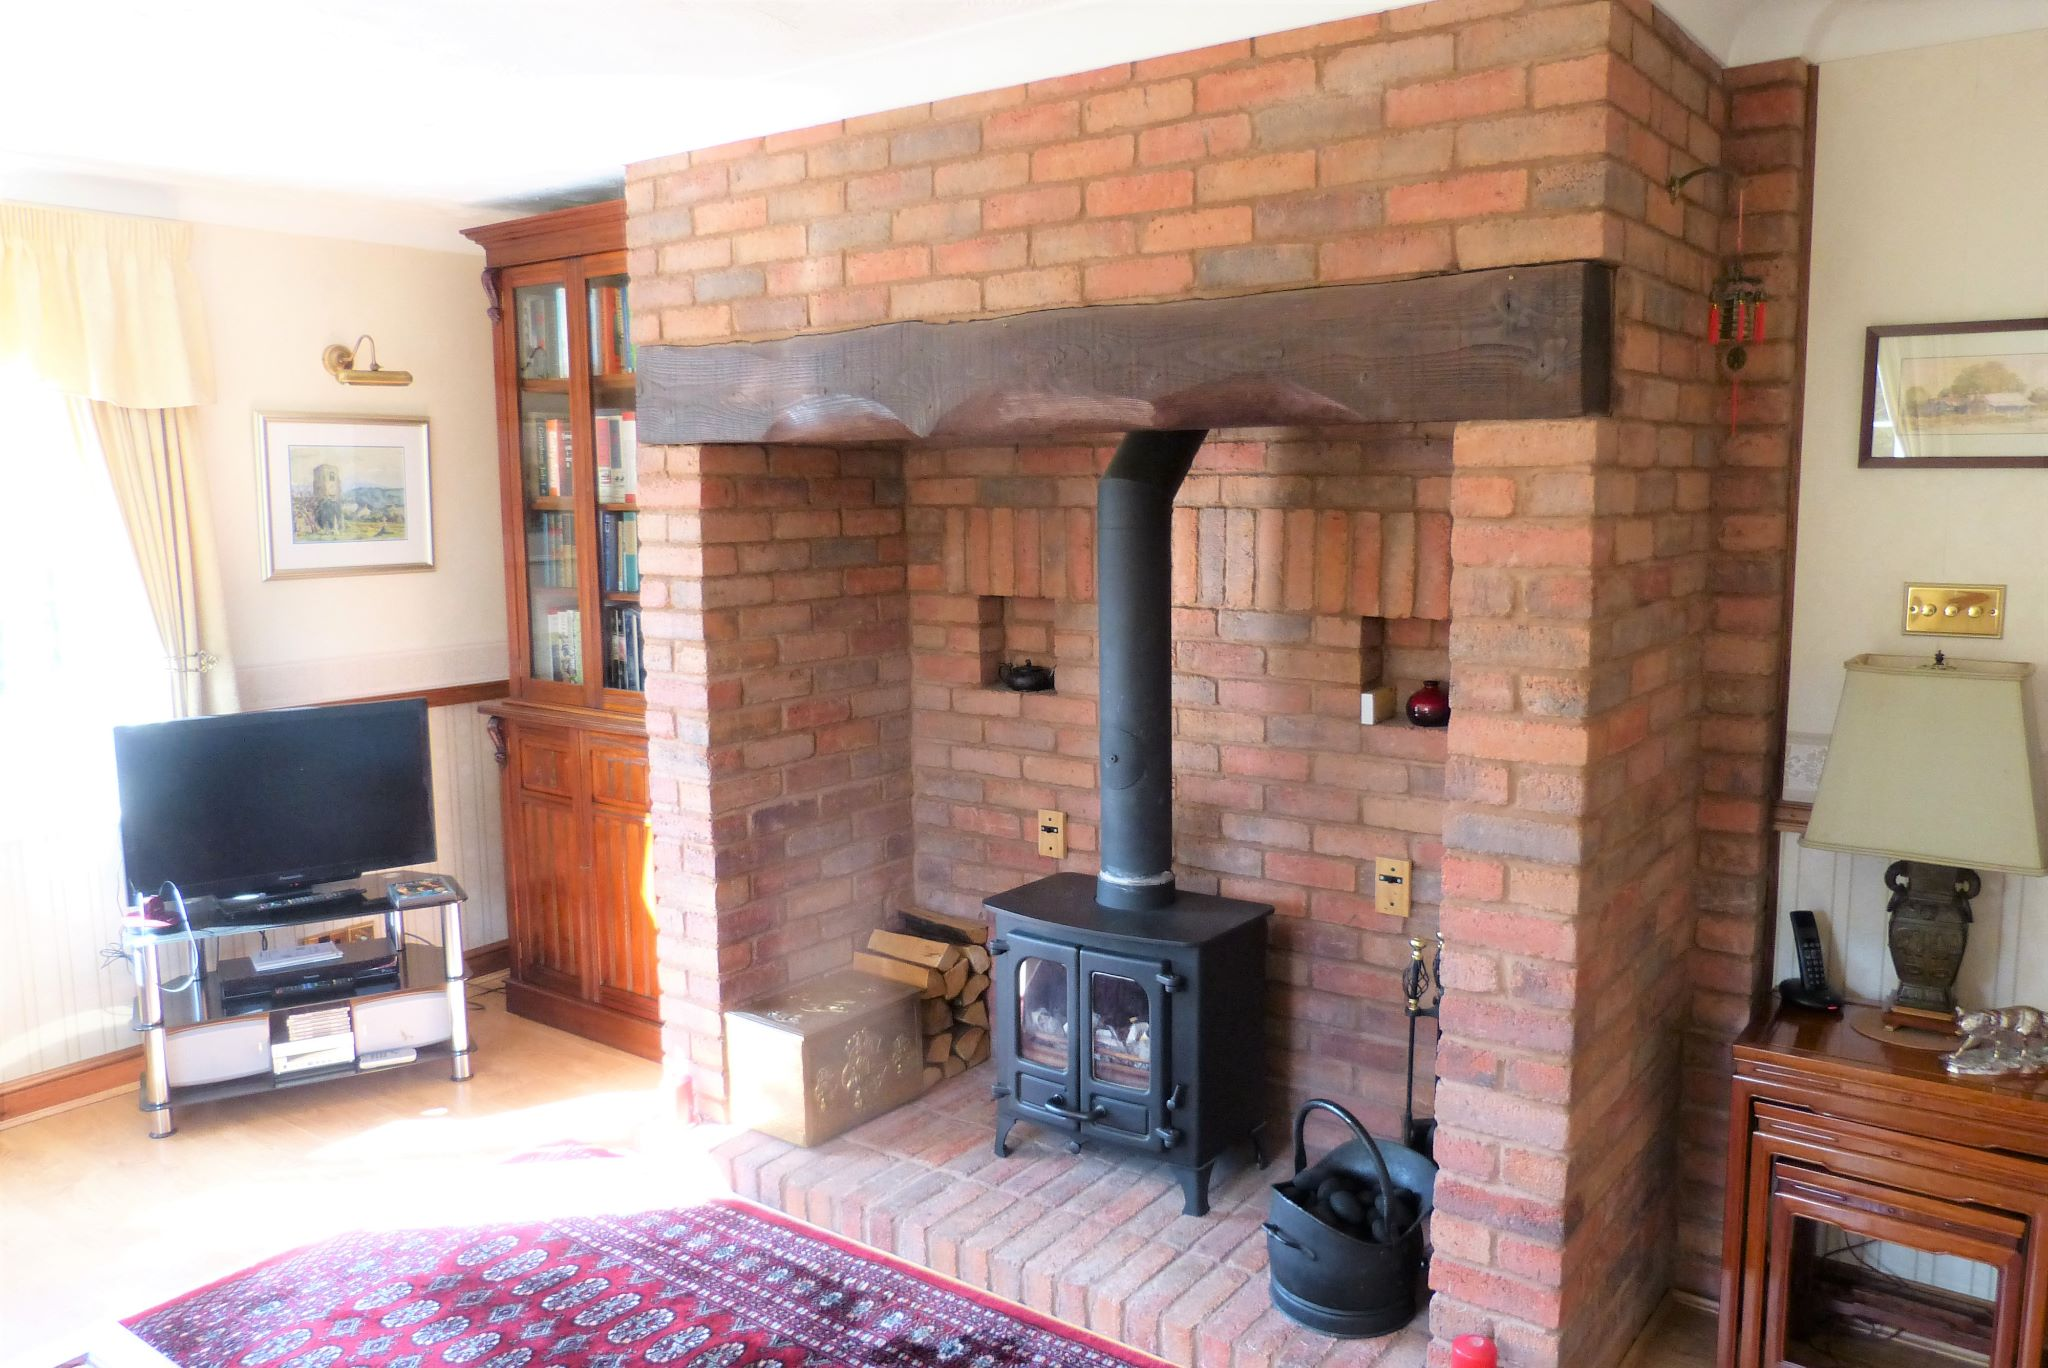 3 bedroom detached bungalow SSTC in Abergele - Photograph 4